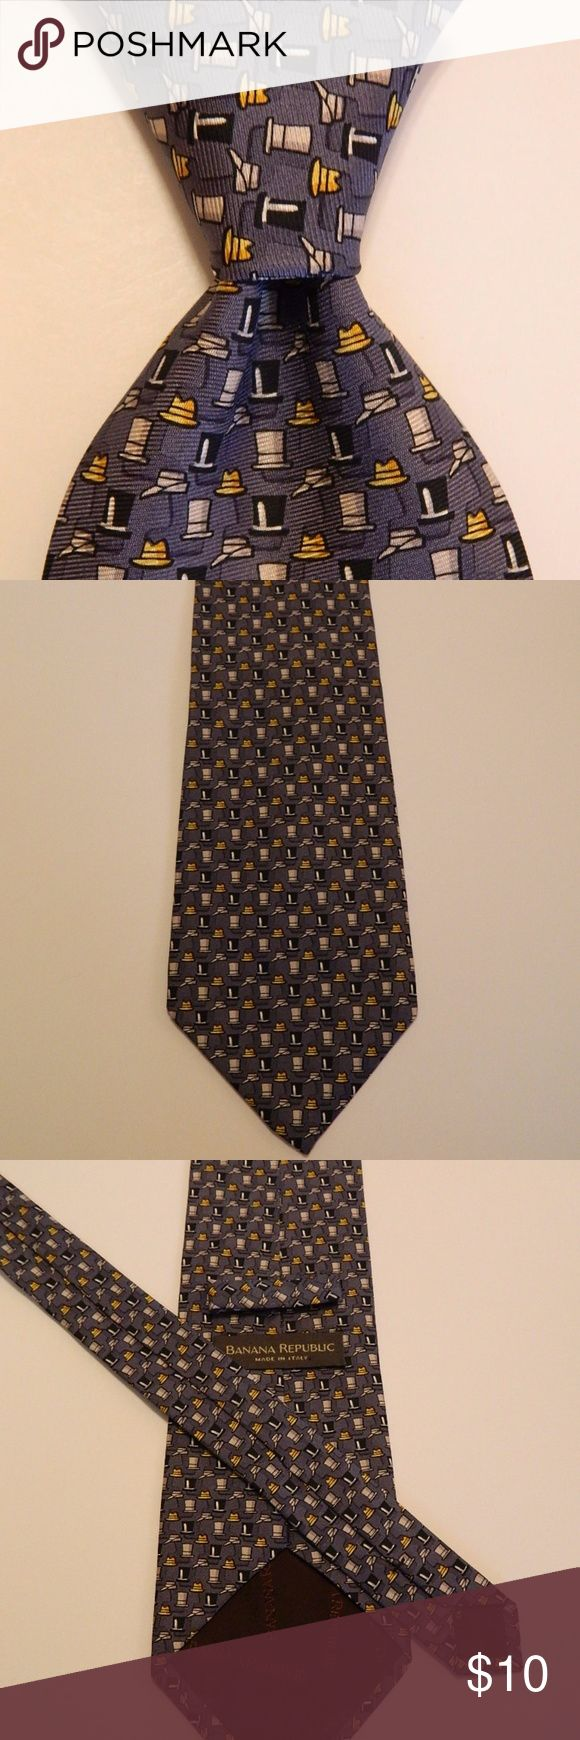 """BANANA REPUBLIC Silk Necktie ITALY Top Hats Gray BANANA REPUBLIC Men's 100% Silk Necktie ITALY Novelty TOP HATS Gray/Black EUC  ·        Brand: Banana Republic ·        Style: Neck Tie ·        Color: Gray/Black/Yellow ·        Material: 100% Silk ·        Attachment: Tied ·        Length: Short 56"""" ·        Width: Wide 3 7/8"""" ·        Pattern: Novelty (Top Hats) ·        Country/Region of Manufacturer: Italy ·        Condition: Excellent Used Condition Banana Republic Accessories Ties"""